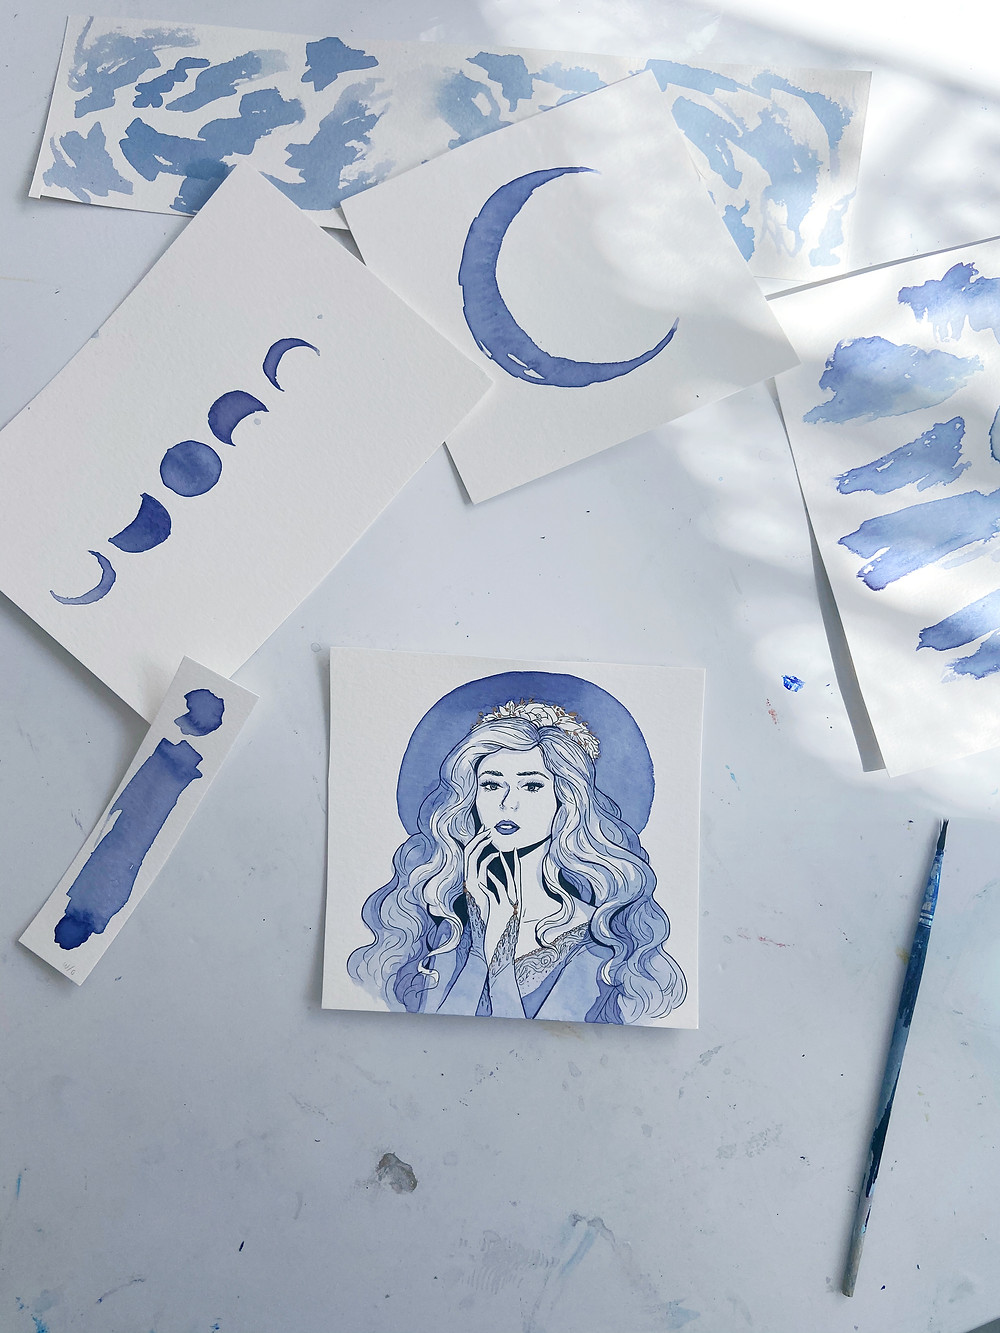 a painting of a woman using blue ink is surrounded by swatches